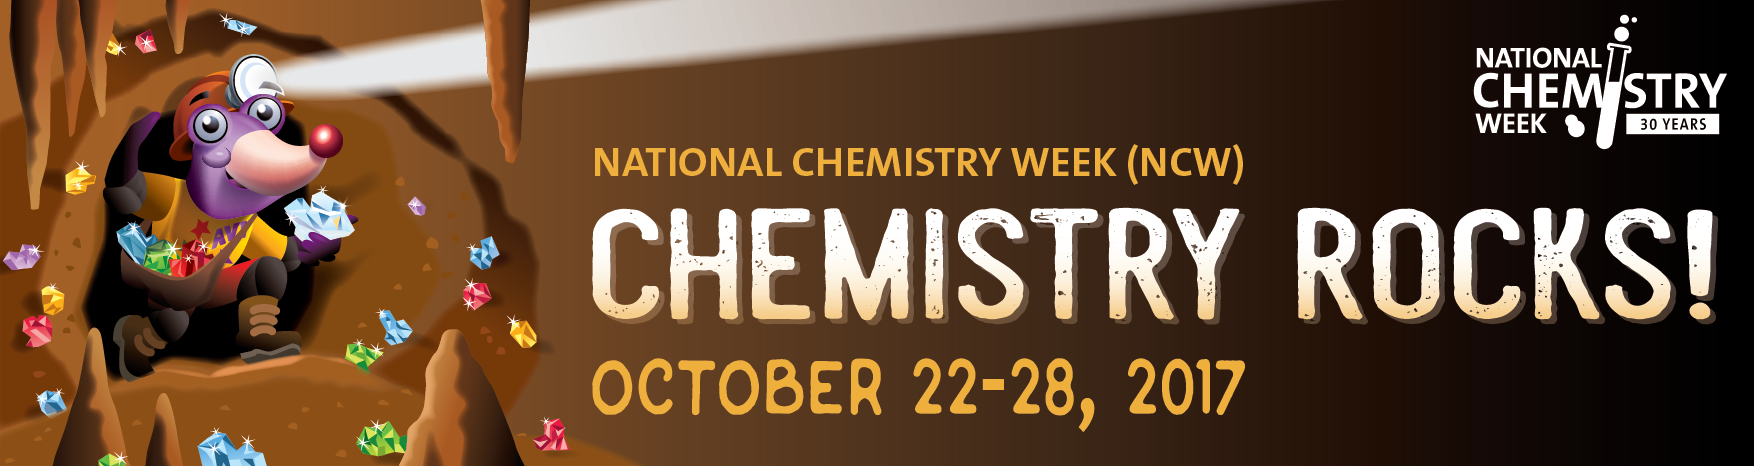 National Chemistry Week (NCW) Web Banner